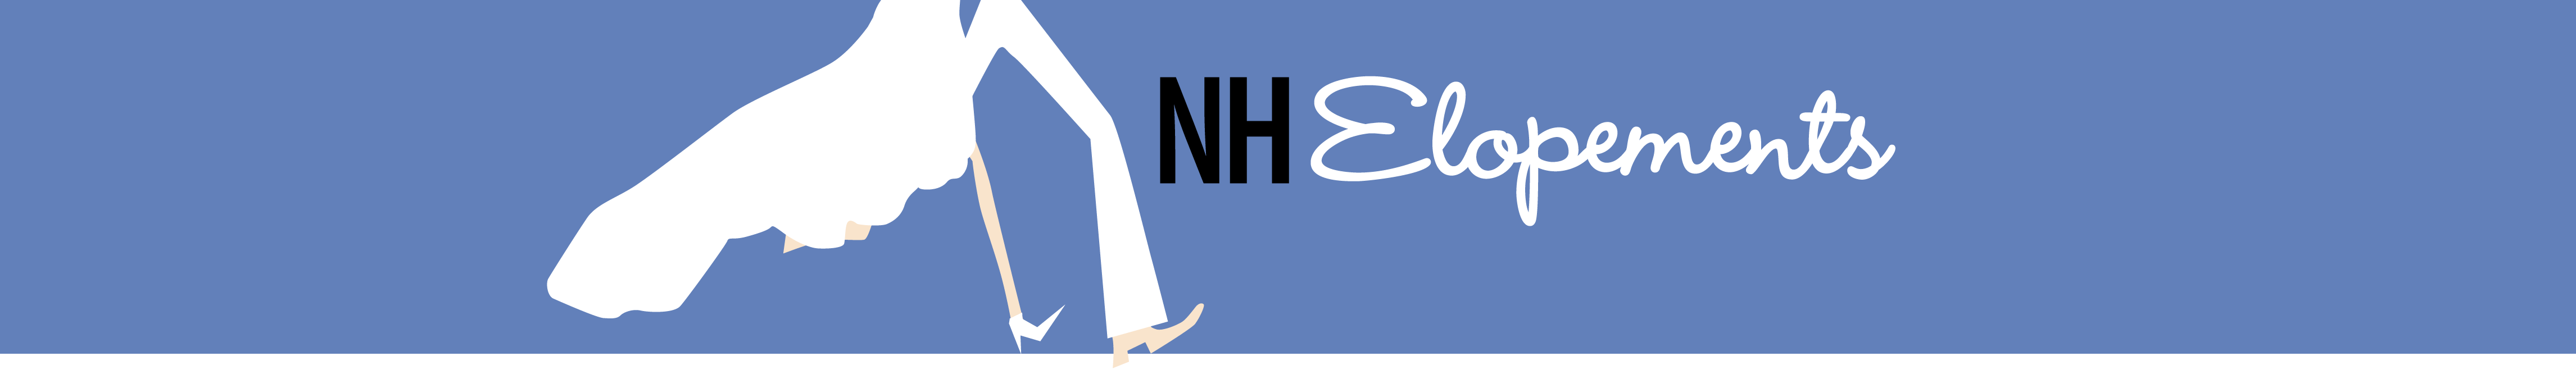 NH Elopements - photo and video services for elopements and gay weddings in North Conway and Jackson, New Hampshire. Elope in the White Mountains!